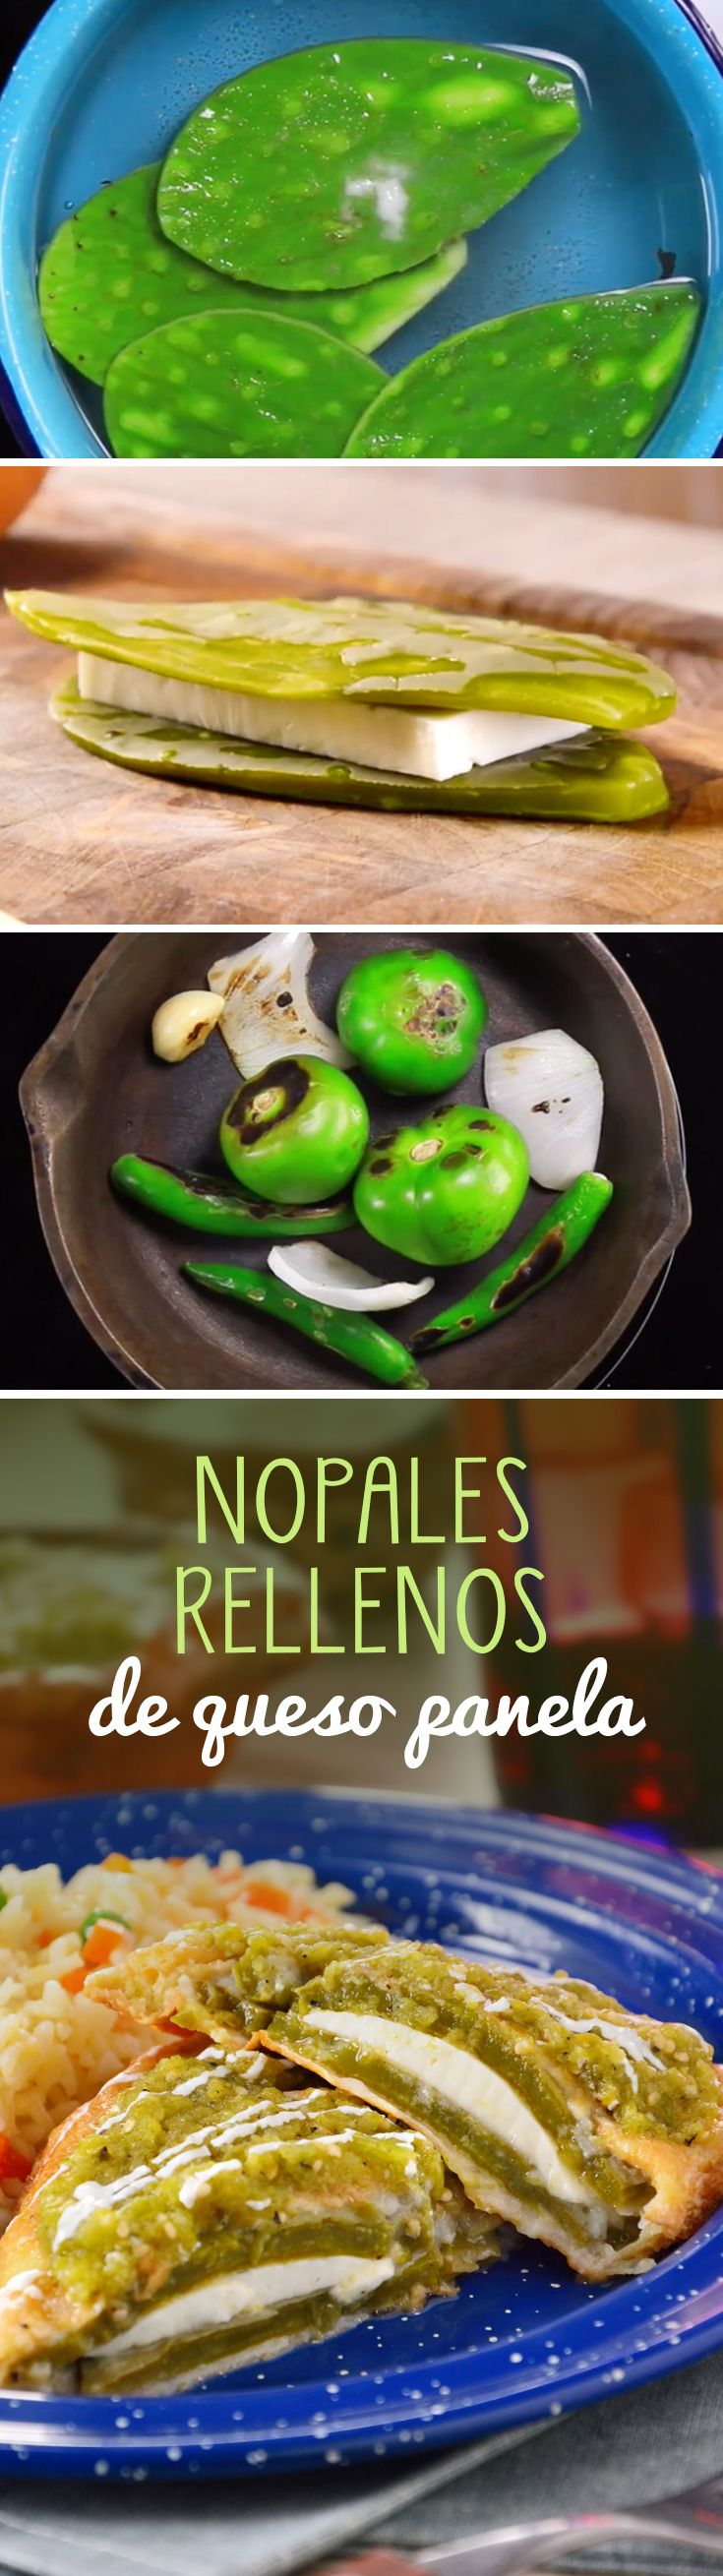 Nopales Rellenos de Queso Panela - Healthy Eating İdeas For Exercise Mexican Food Recipes, Vegan Recipes, Cooking Recipes, Cooking Games, Food Porn, Food Dishes, I Foods, Love Food, Queso Fresco